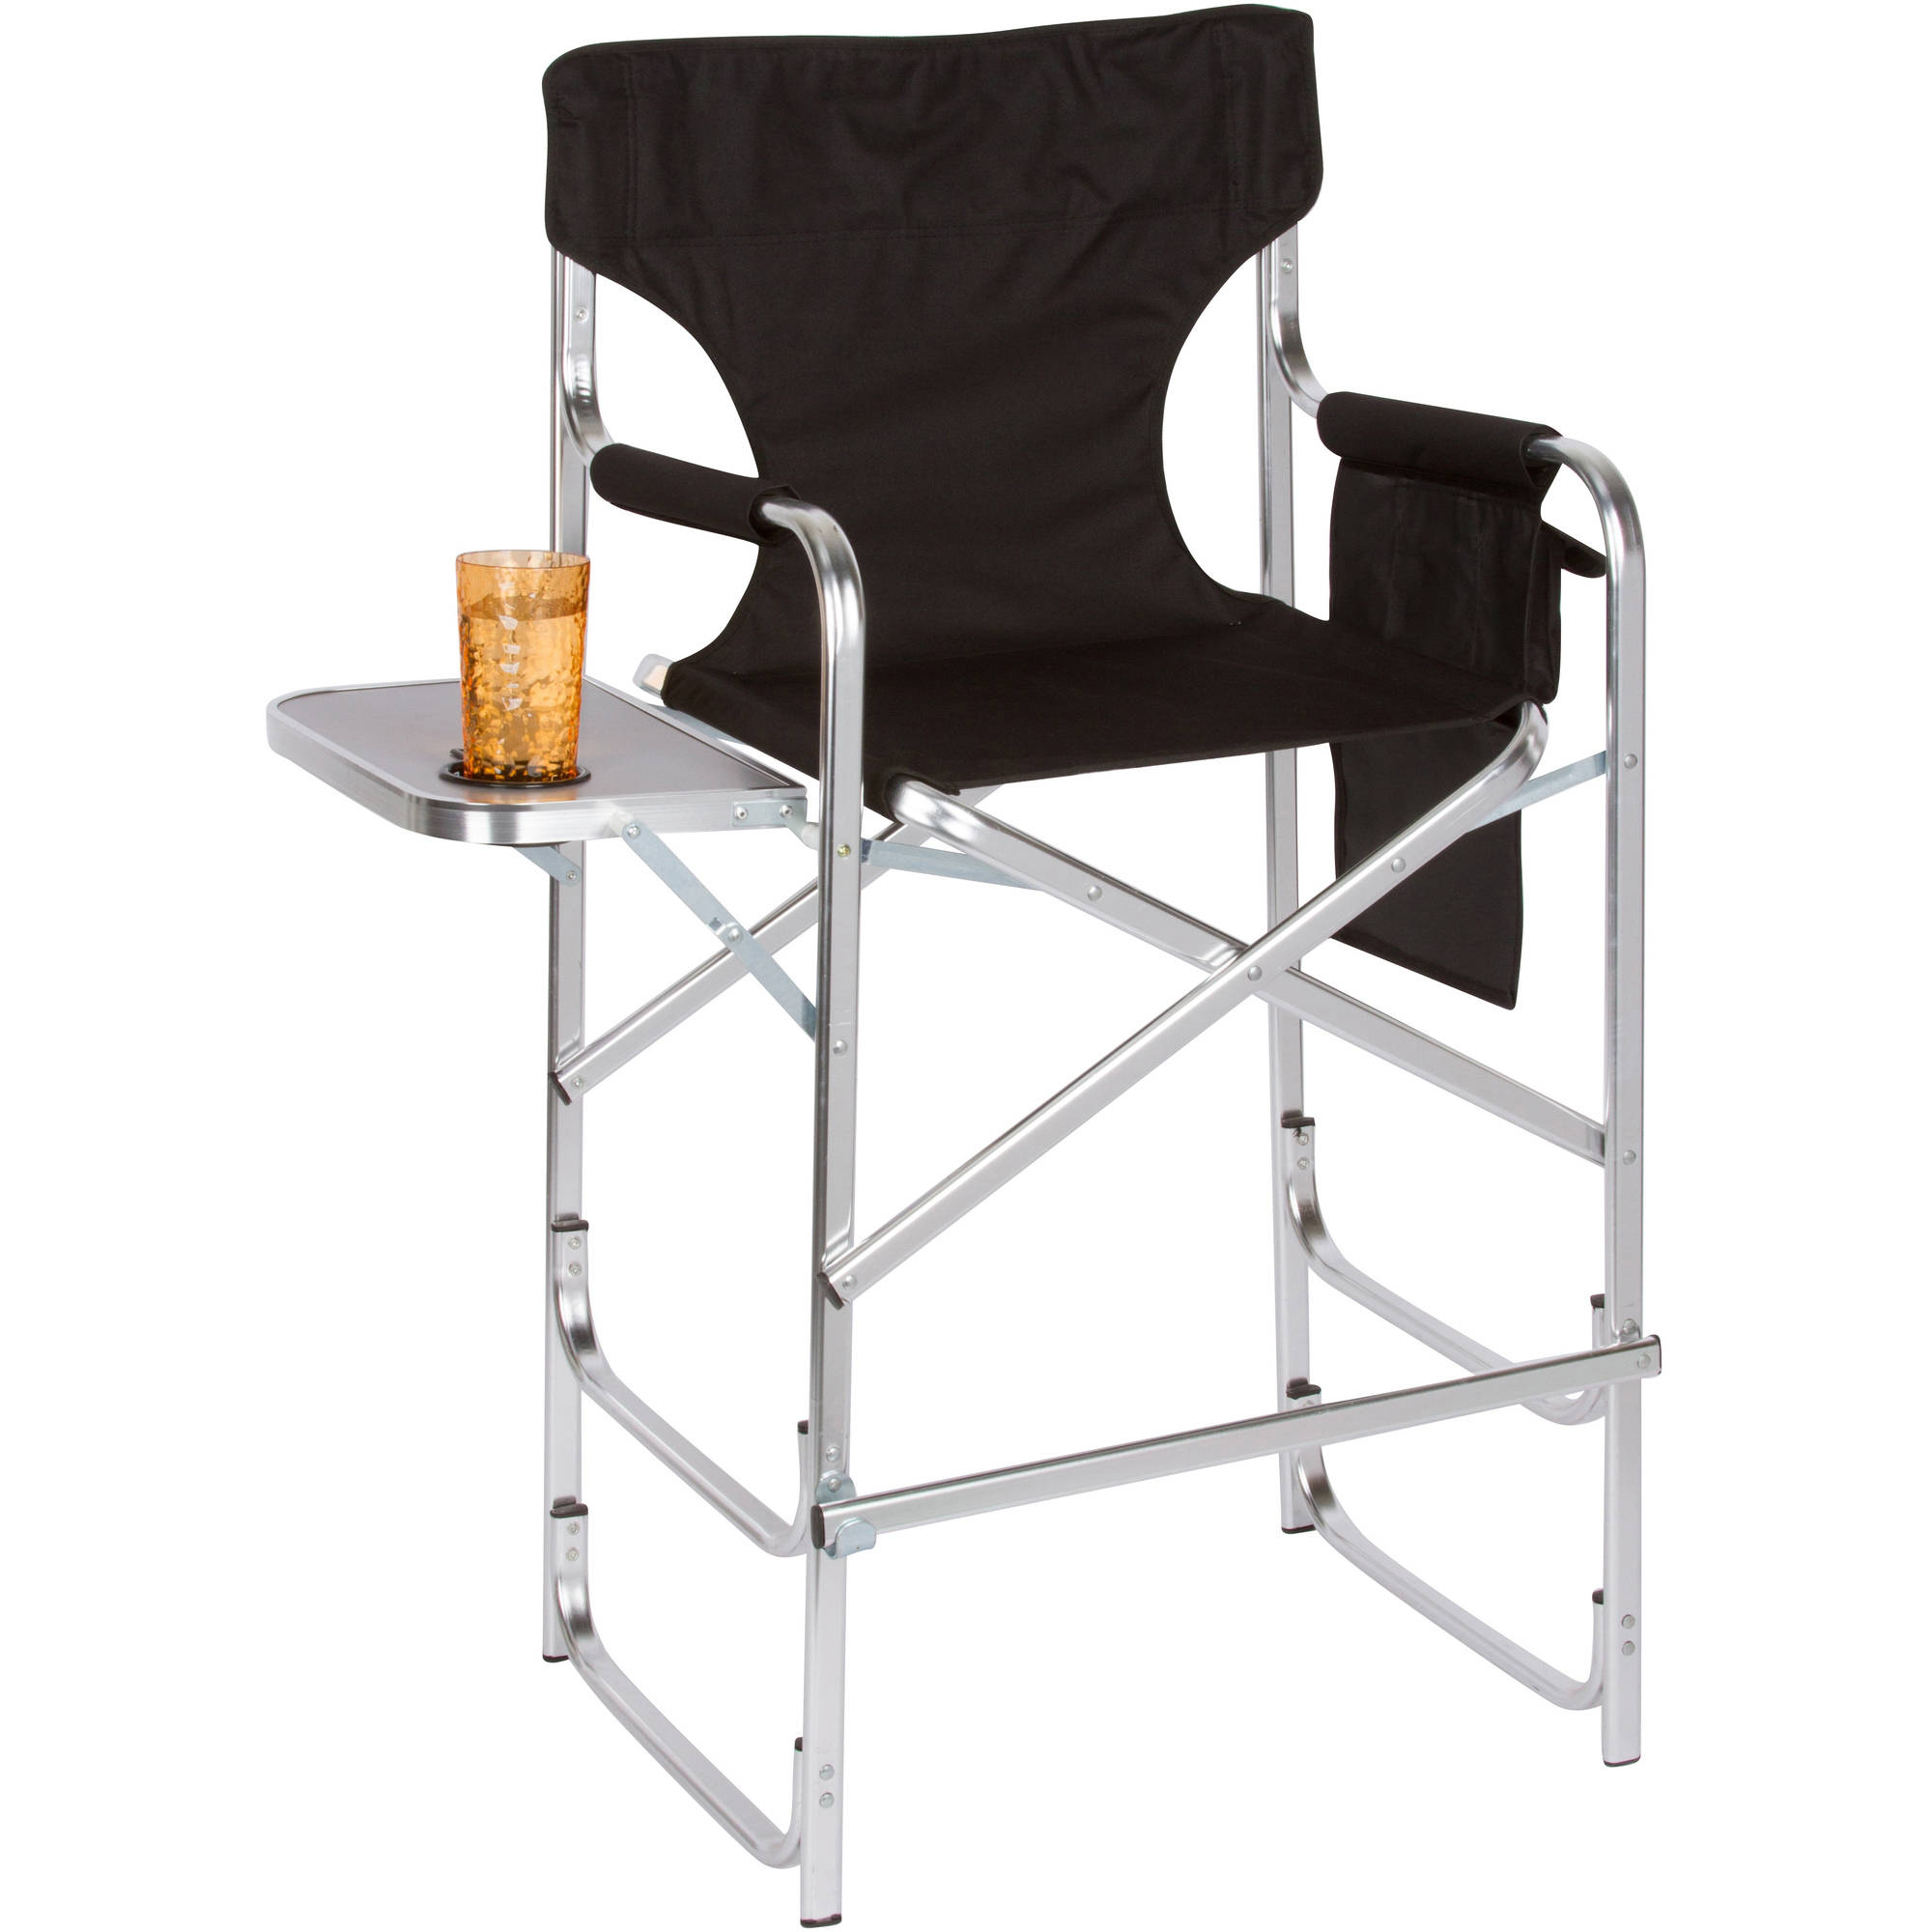 Aluminum Frame Tall Directors Chair With Side Table by